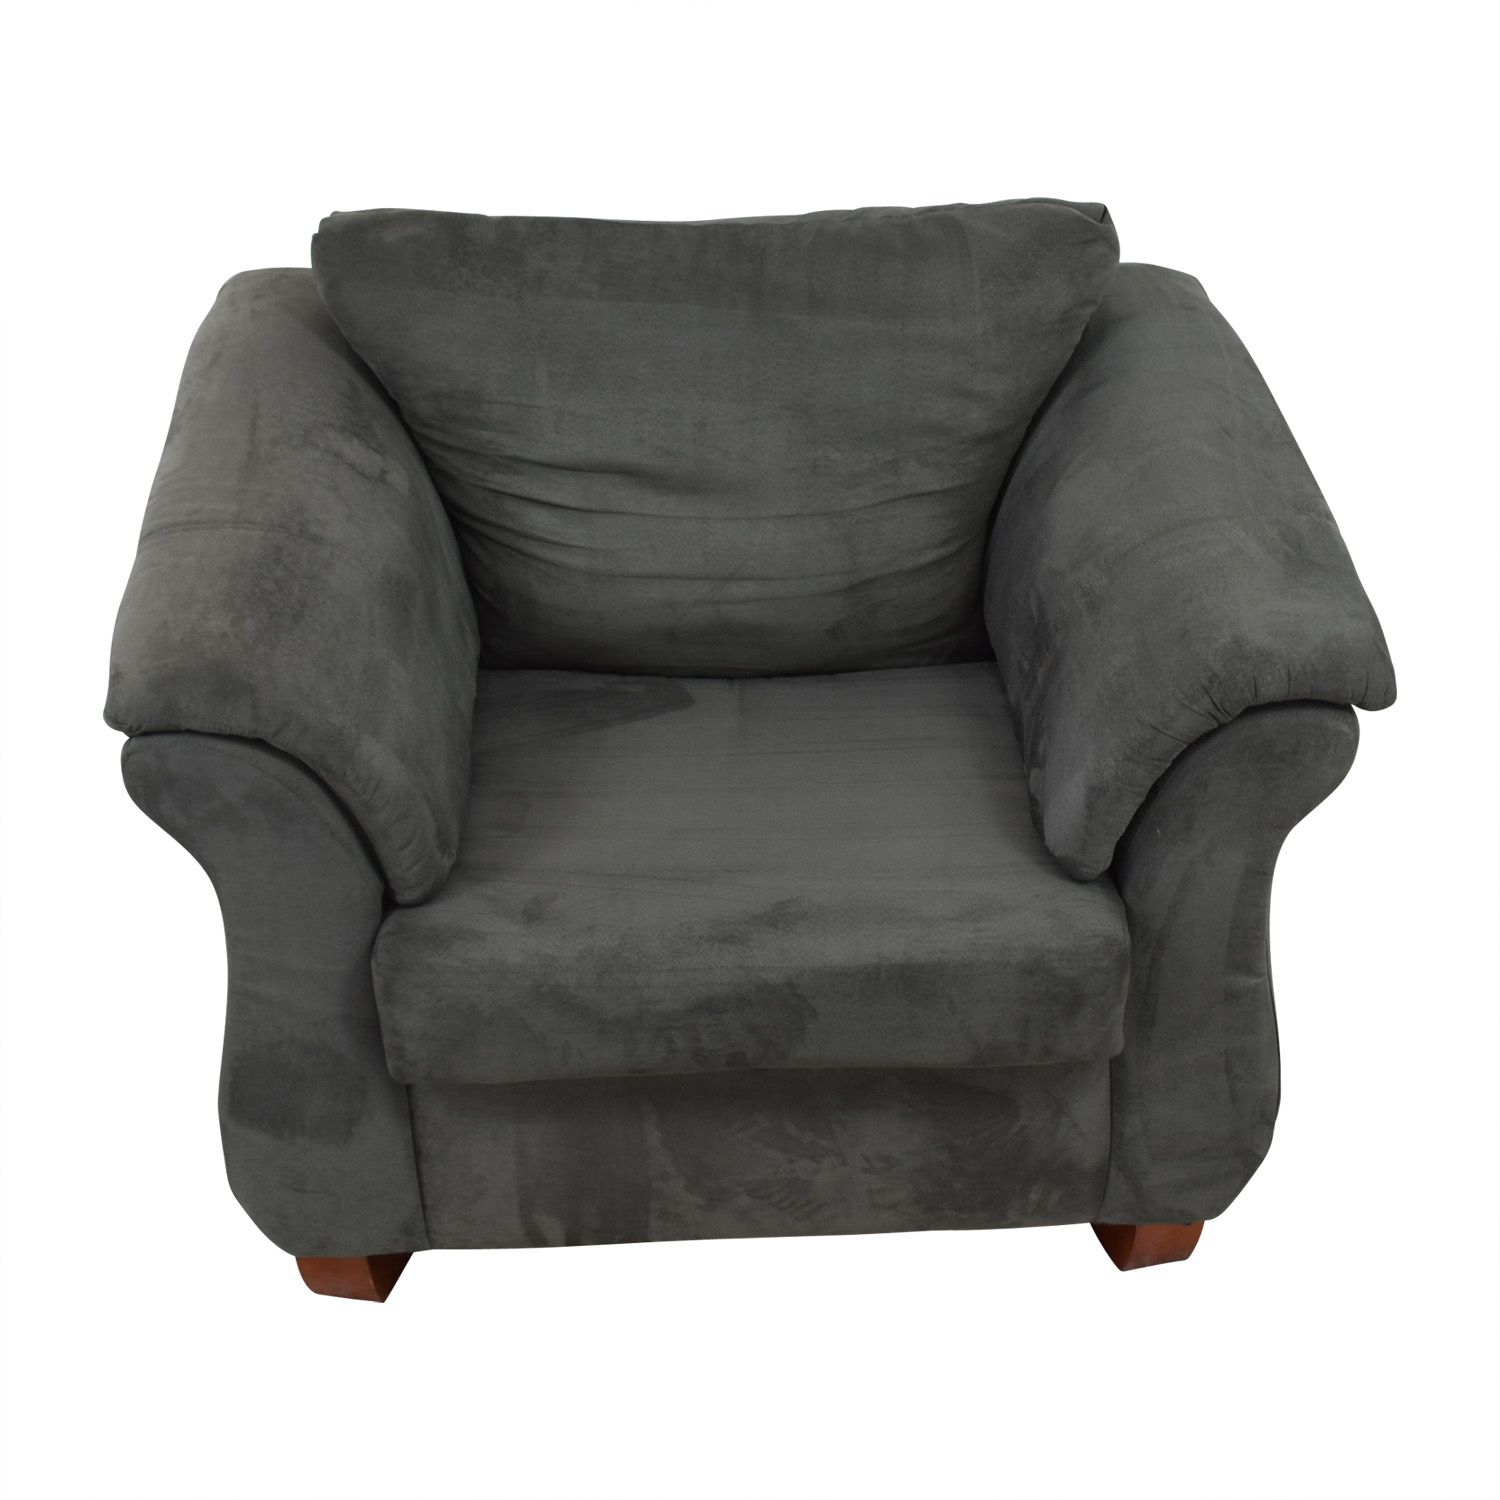 90 Off Value City Furniture Grey Loveseat Accent Chair Sofas